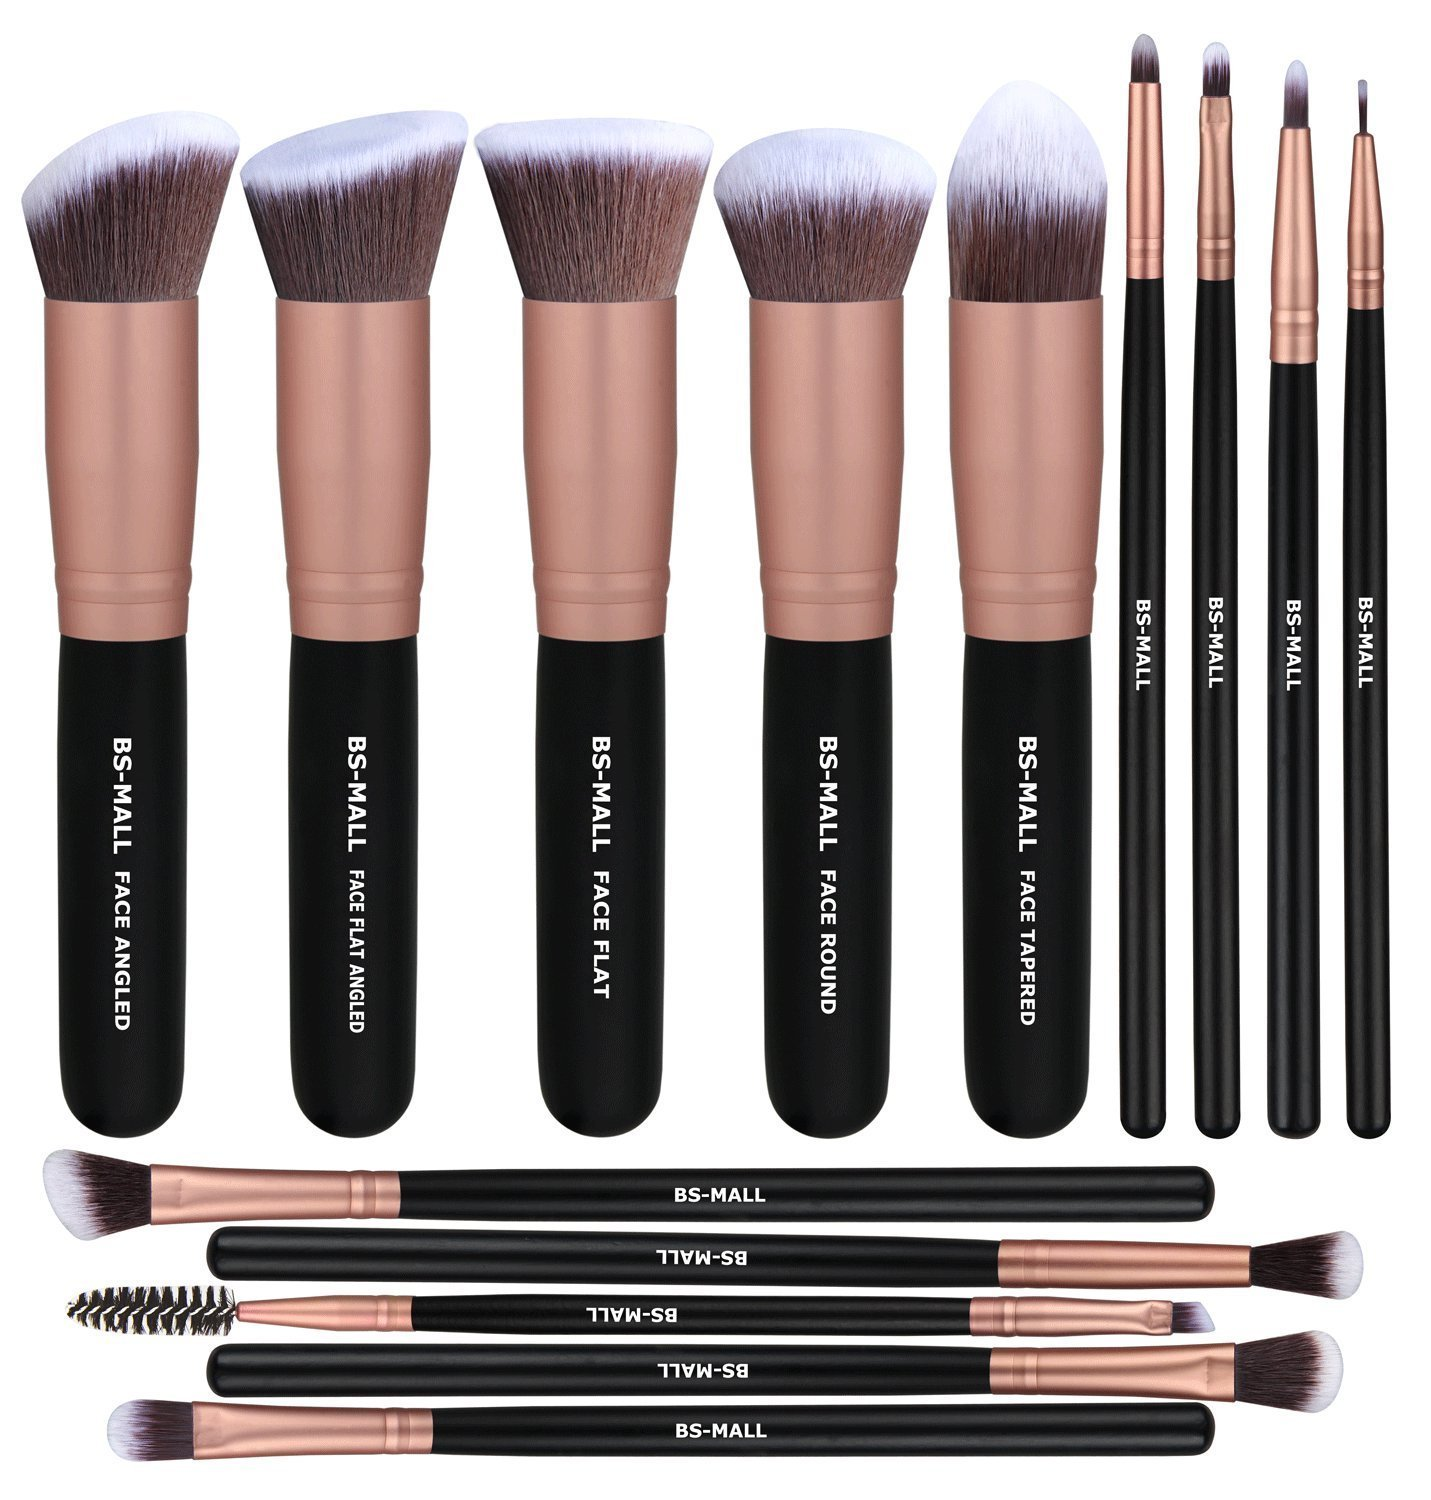 1. BS-MALL Makeup Brushes